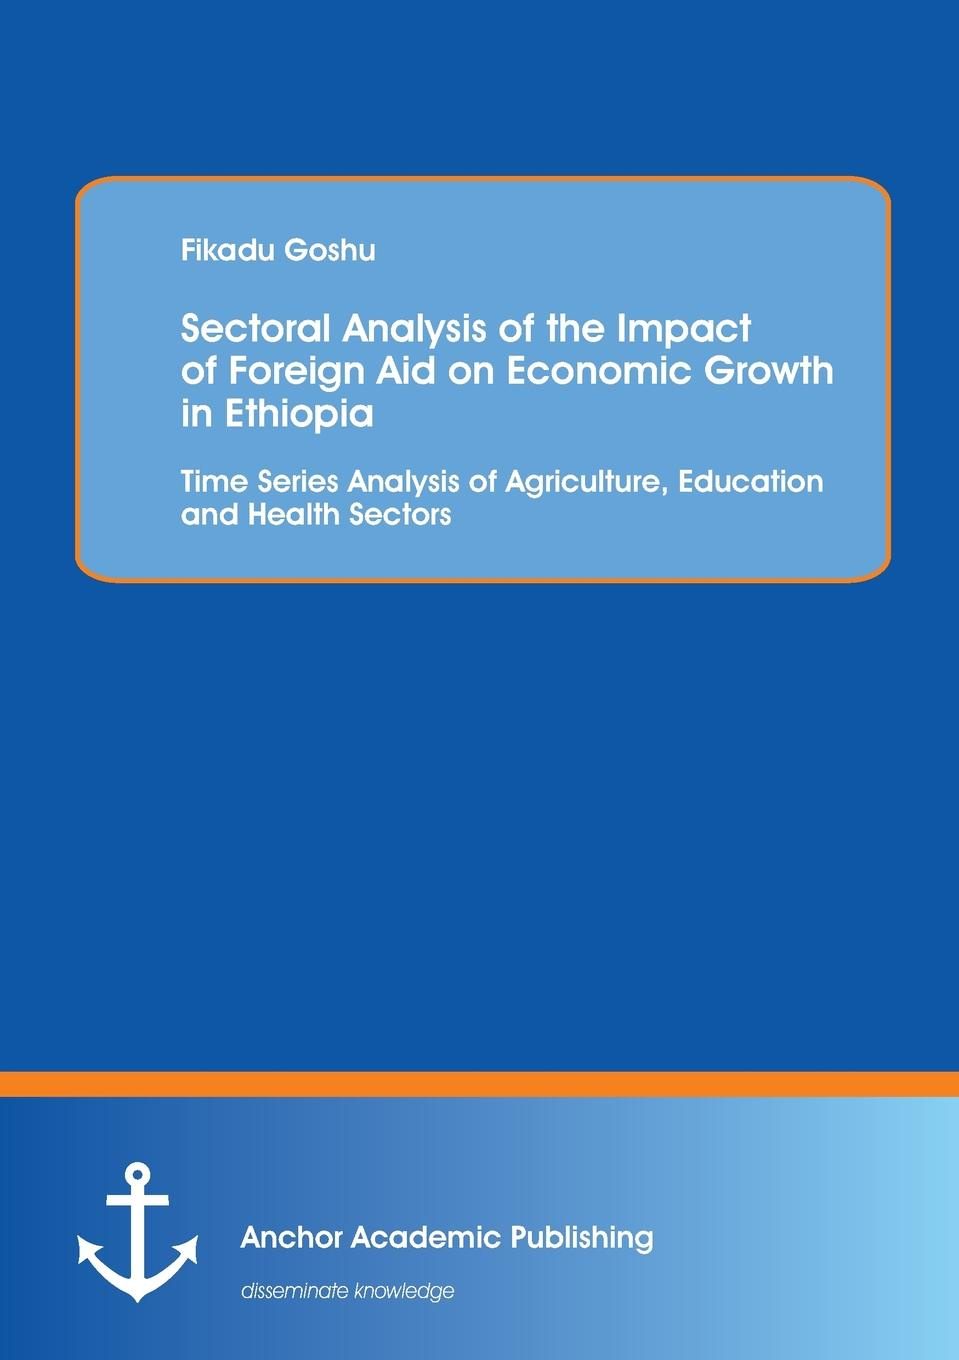 купить Fikadu Goshu Sectoral Analysis of the Impact of Foreign Aid on Economic Growth in Ethiopia. Time Series Analysis of Agriculture, Education and Health Sectors по цене 6102 рублей